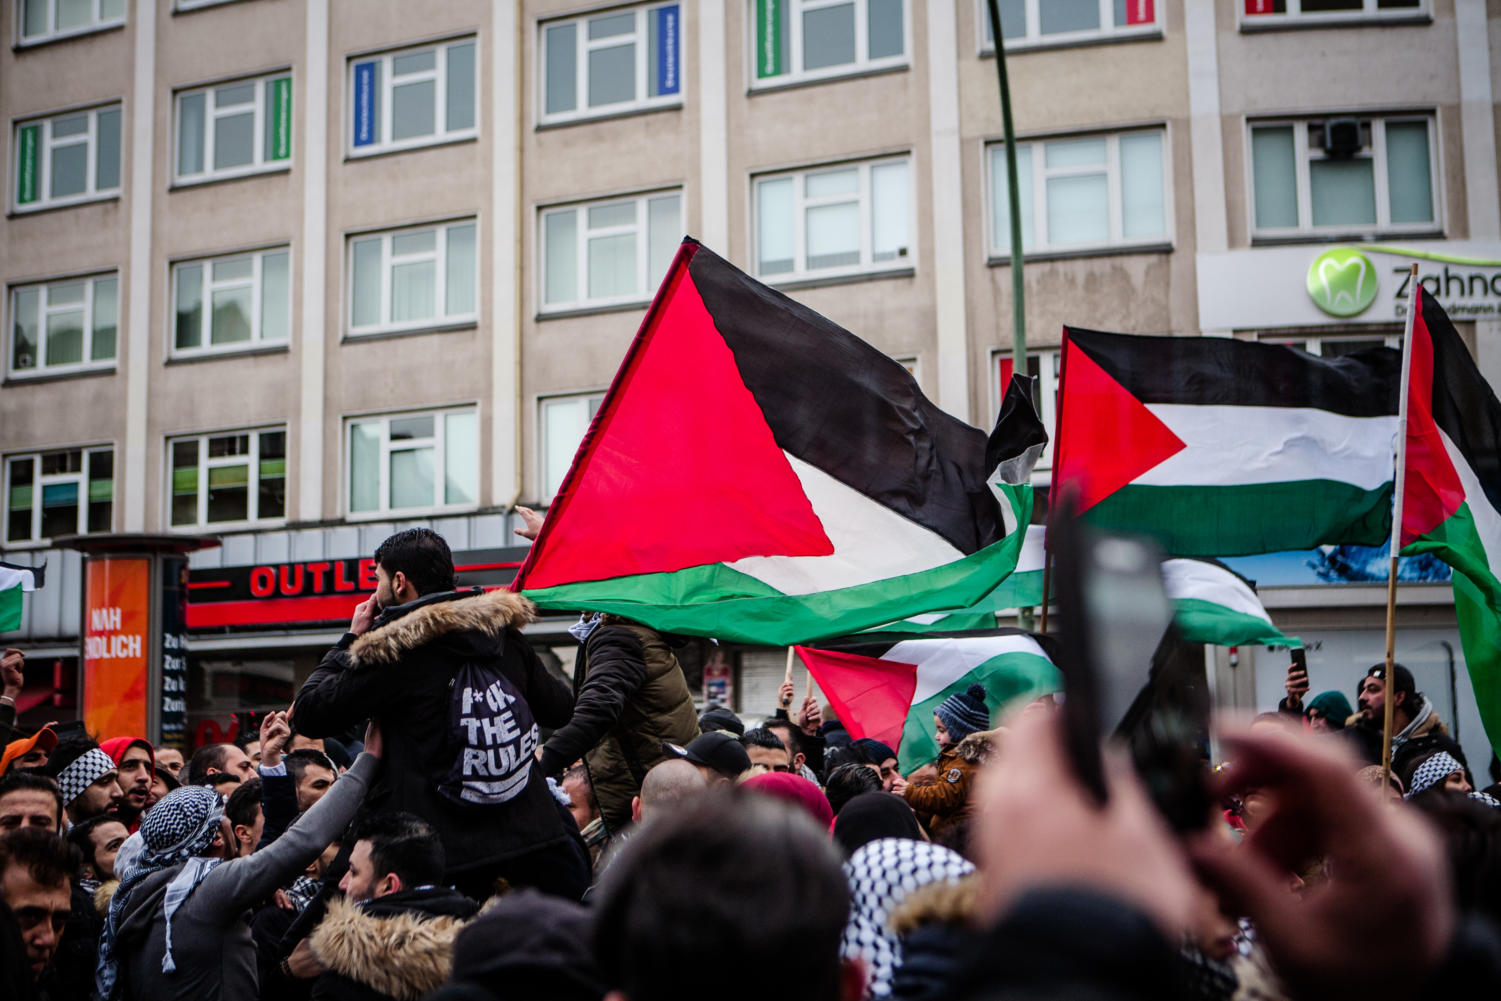 March held in Berlin to protest against Trump moving the U.S. embassy in Israel from Tel Aviv to Jerusalem.